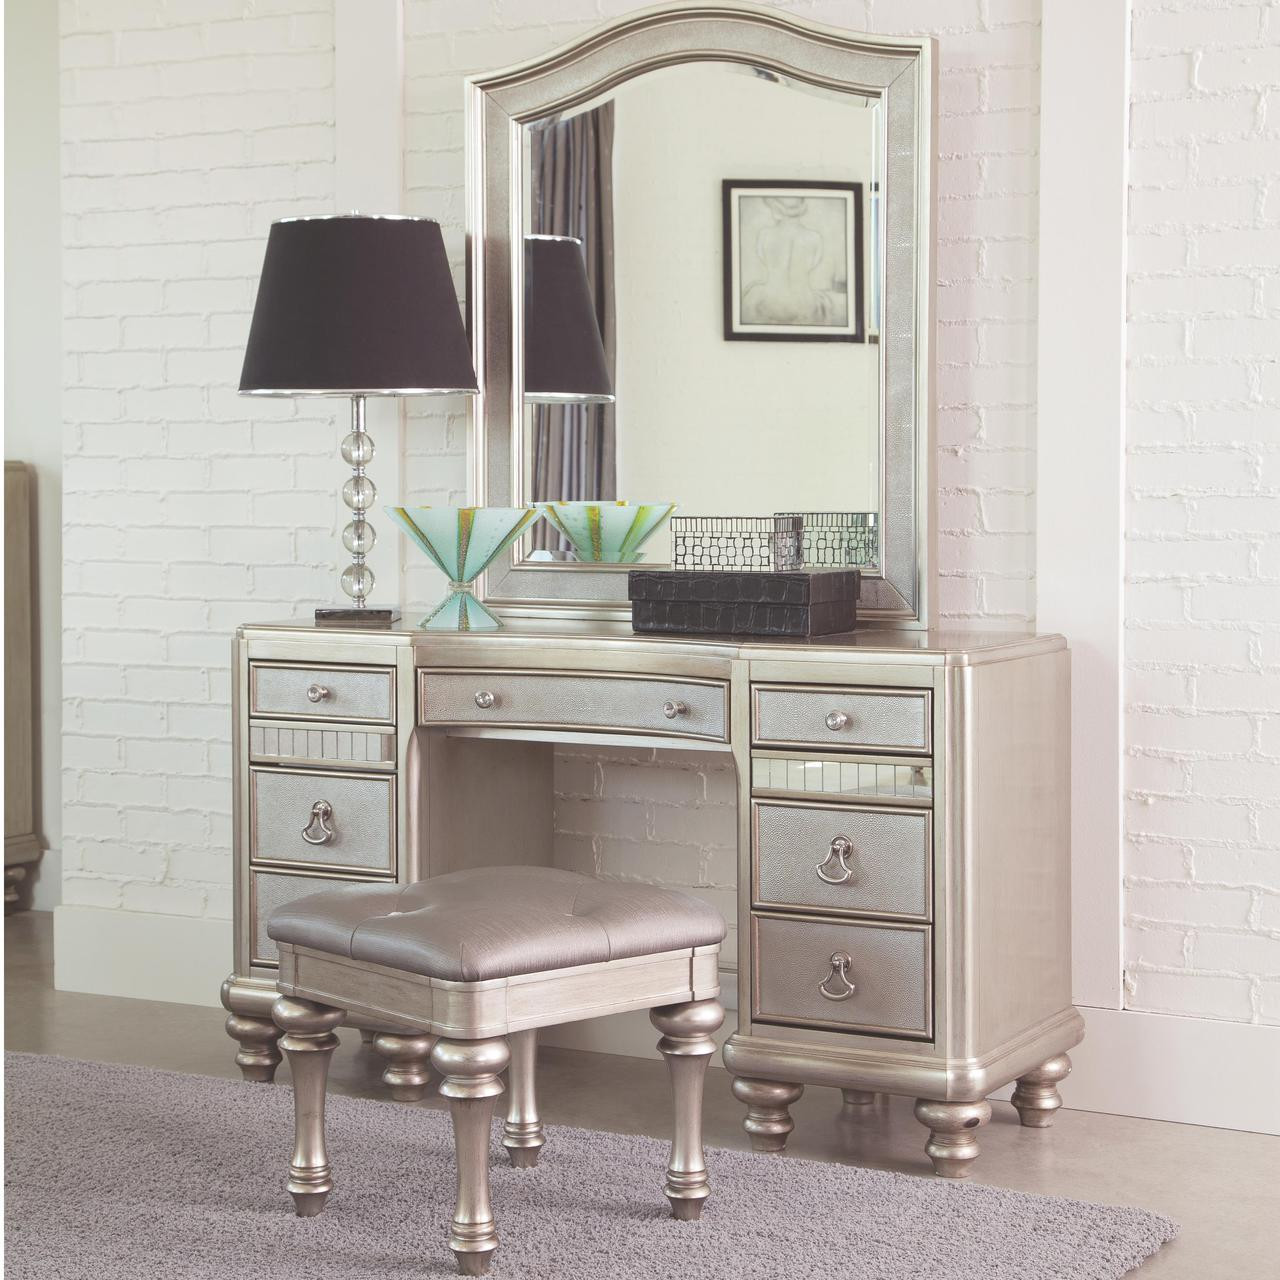 Lex Metallic Platinum Dressing Table With Mirror And Drawers ...